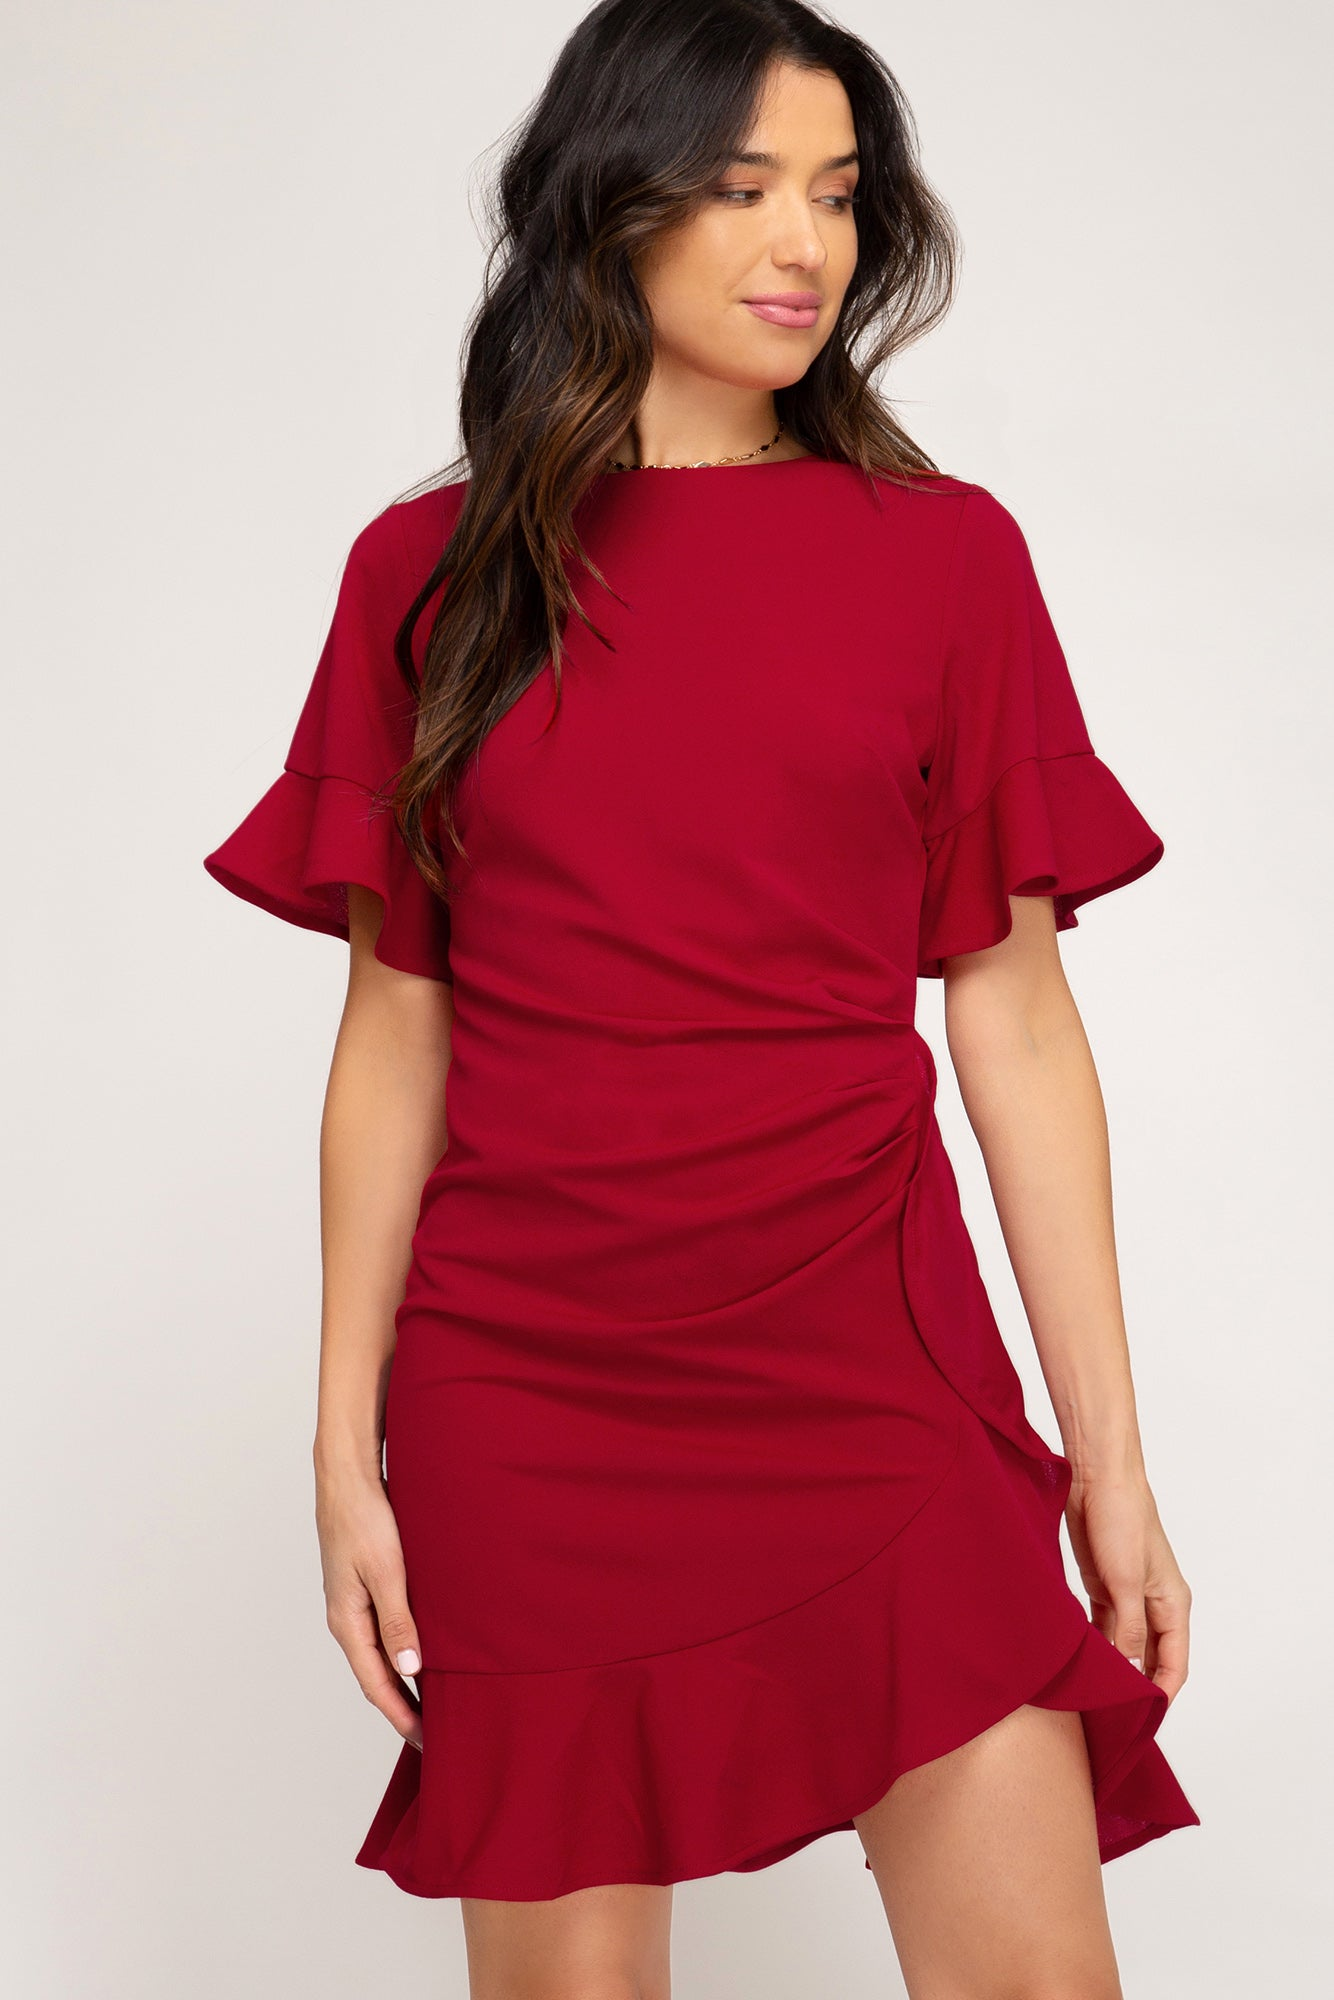 Spectacular Ruffle Dress in Red